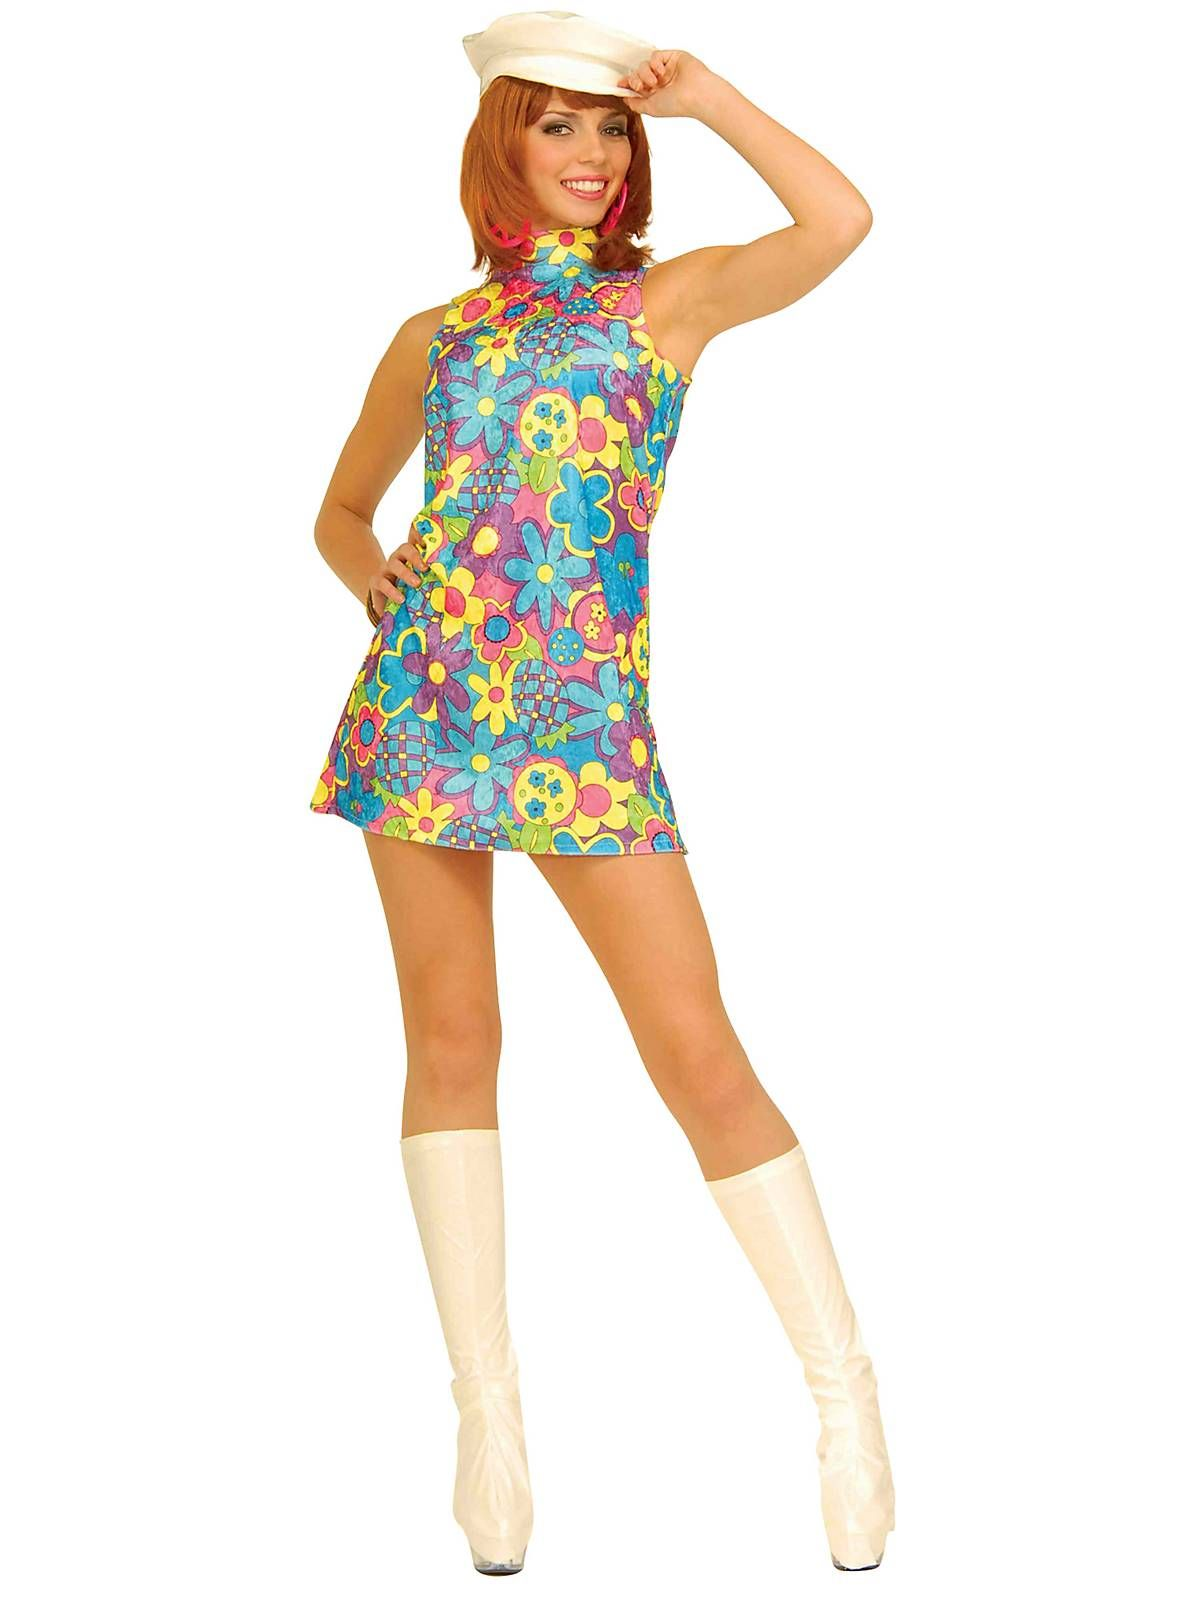 Go Go Dancer Costume | Sexy 60s Halloween Costumes  sc 1 st  Pinterest : 60s halloween costume ideas  - Germanpascual.Com